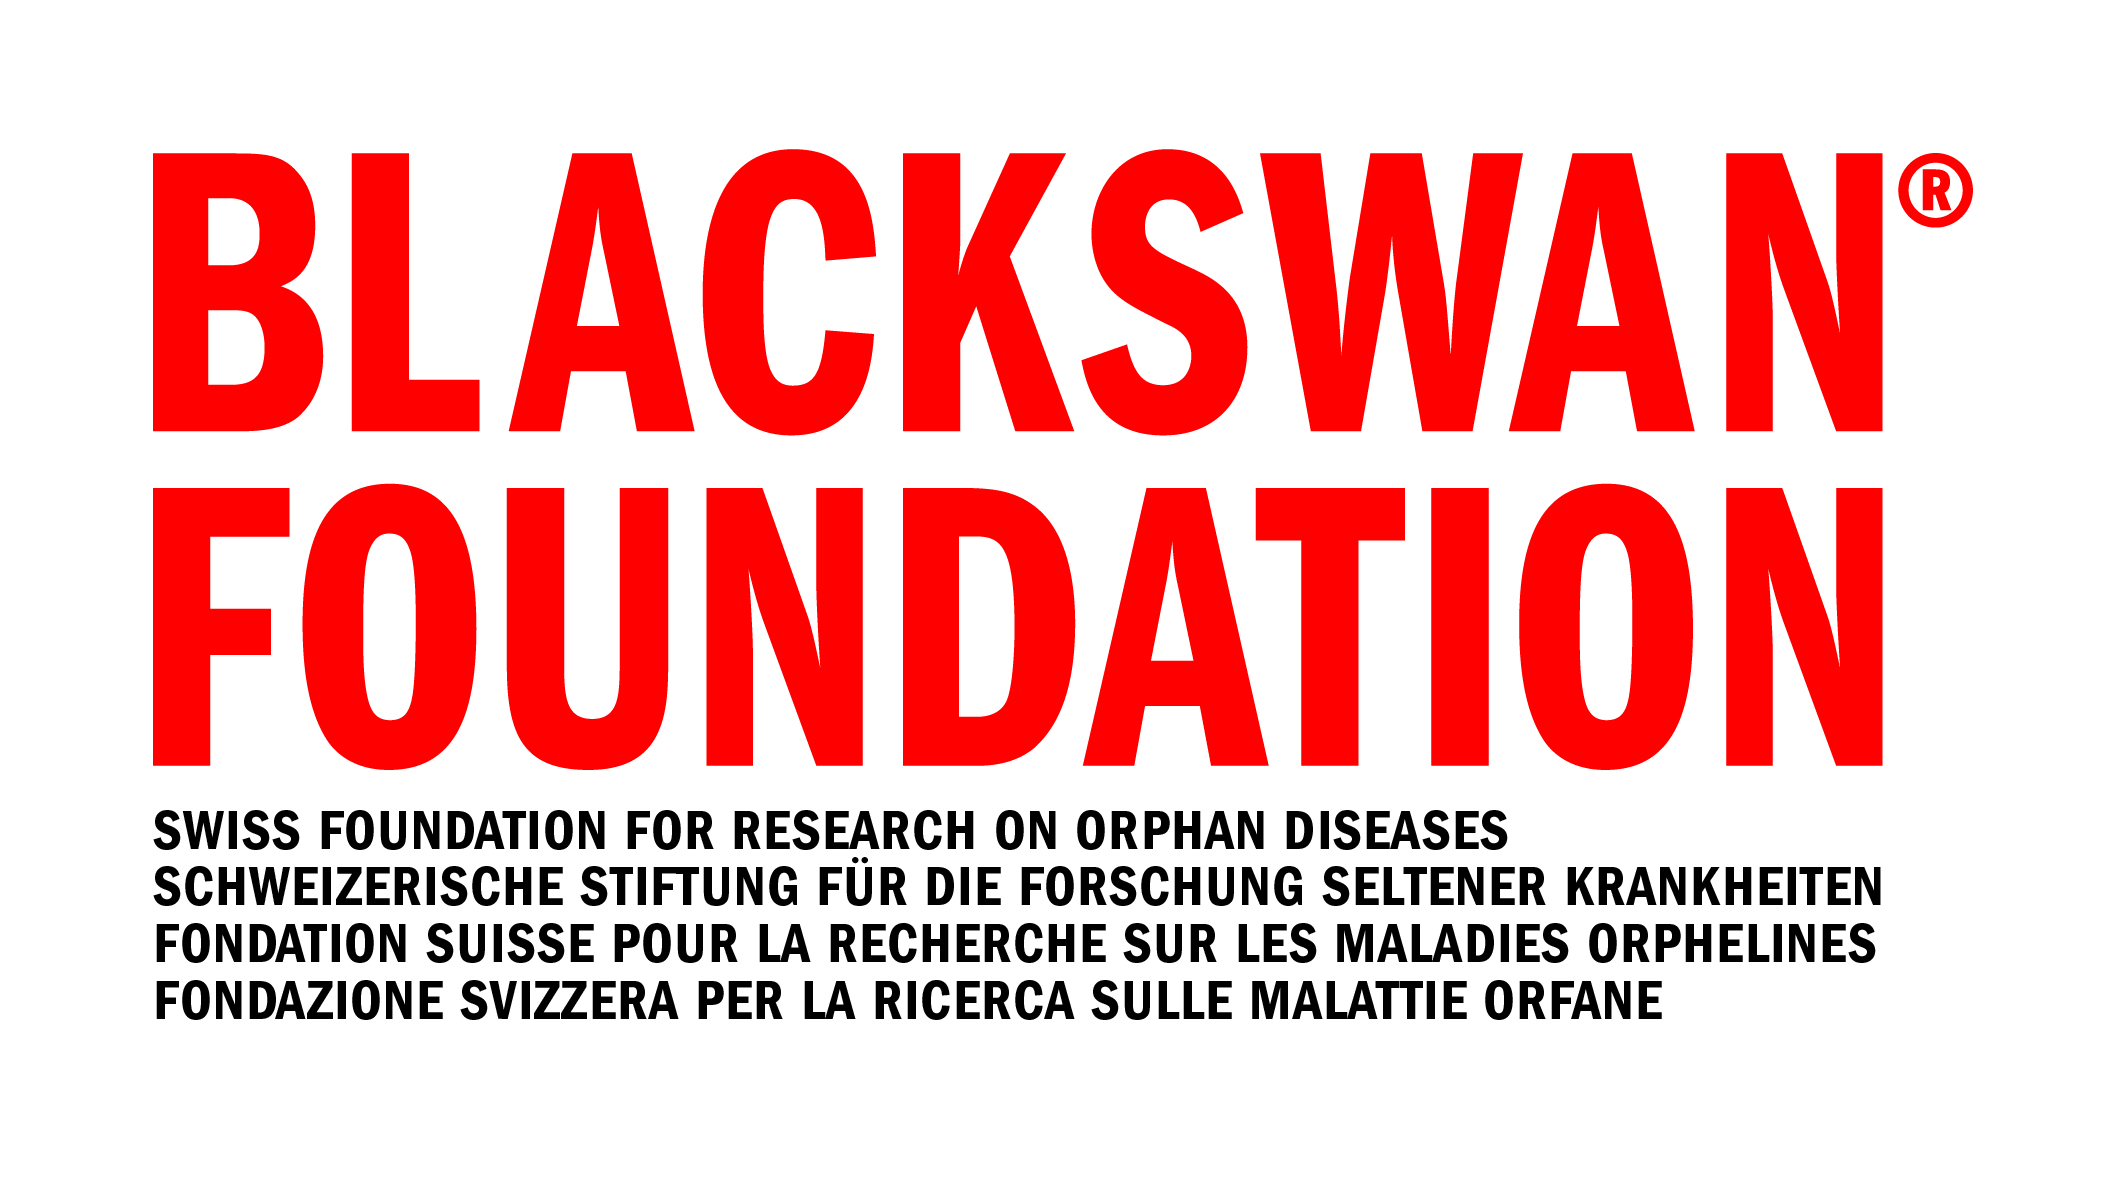 BlackSwan Foundation